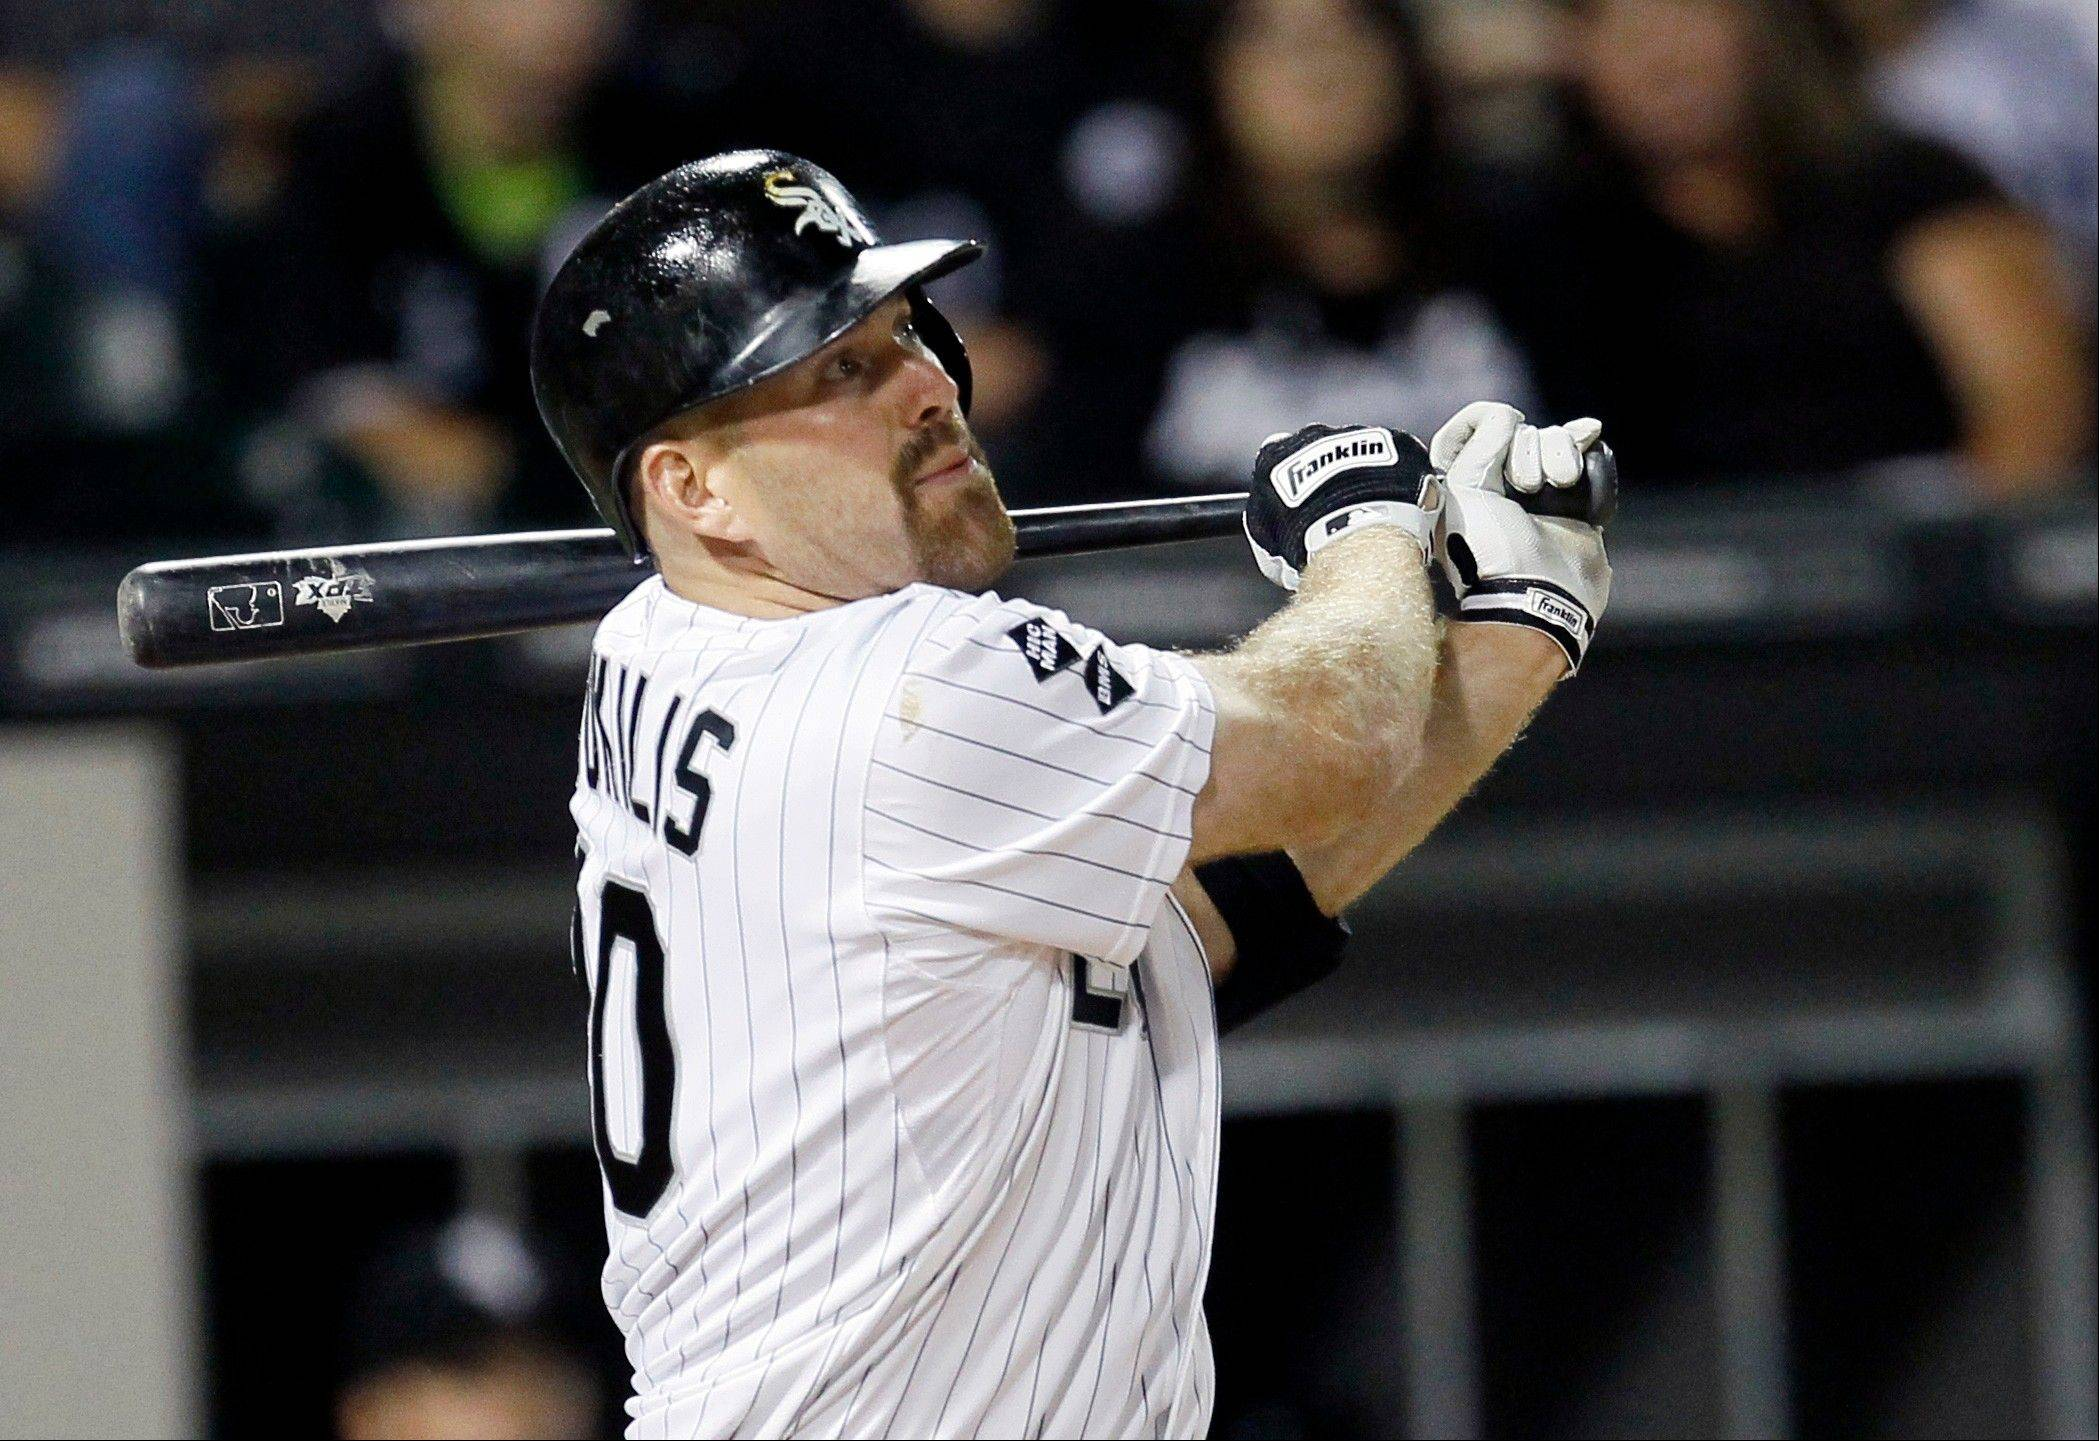 Kevin Youkilis has a .281 average in 10 big league seasons with 150 homers and 618 RBIs.